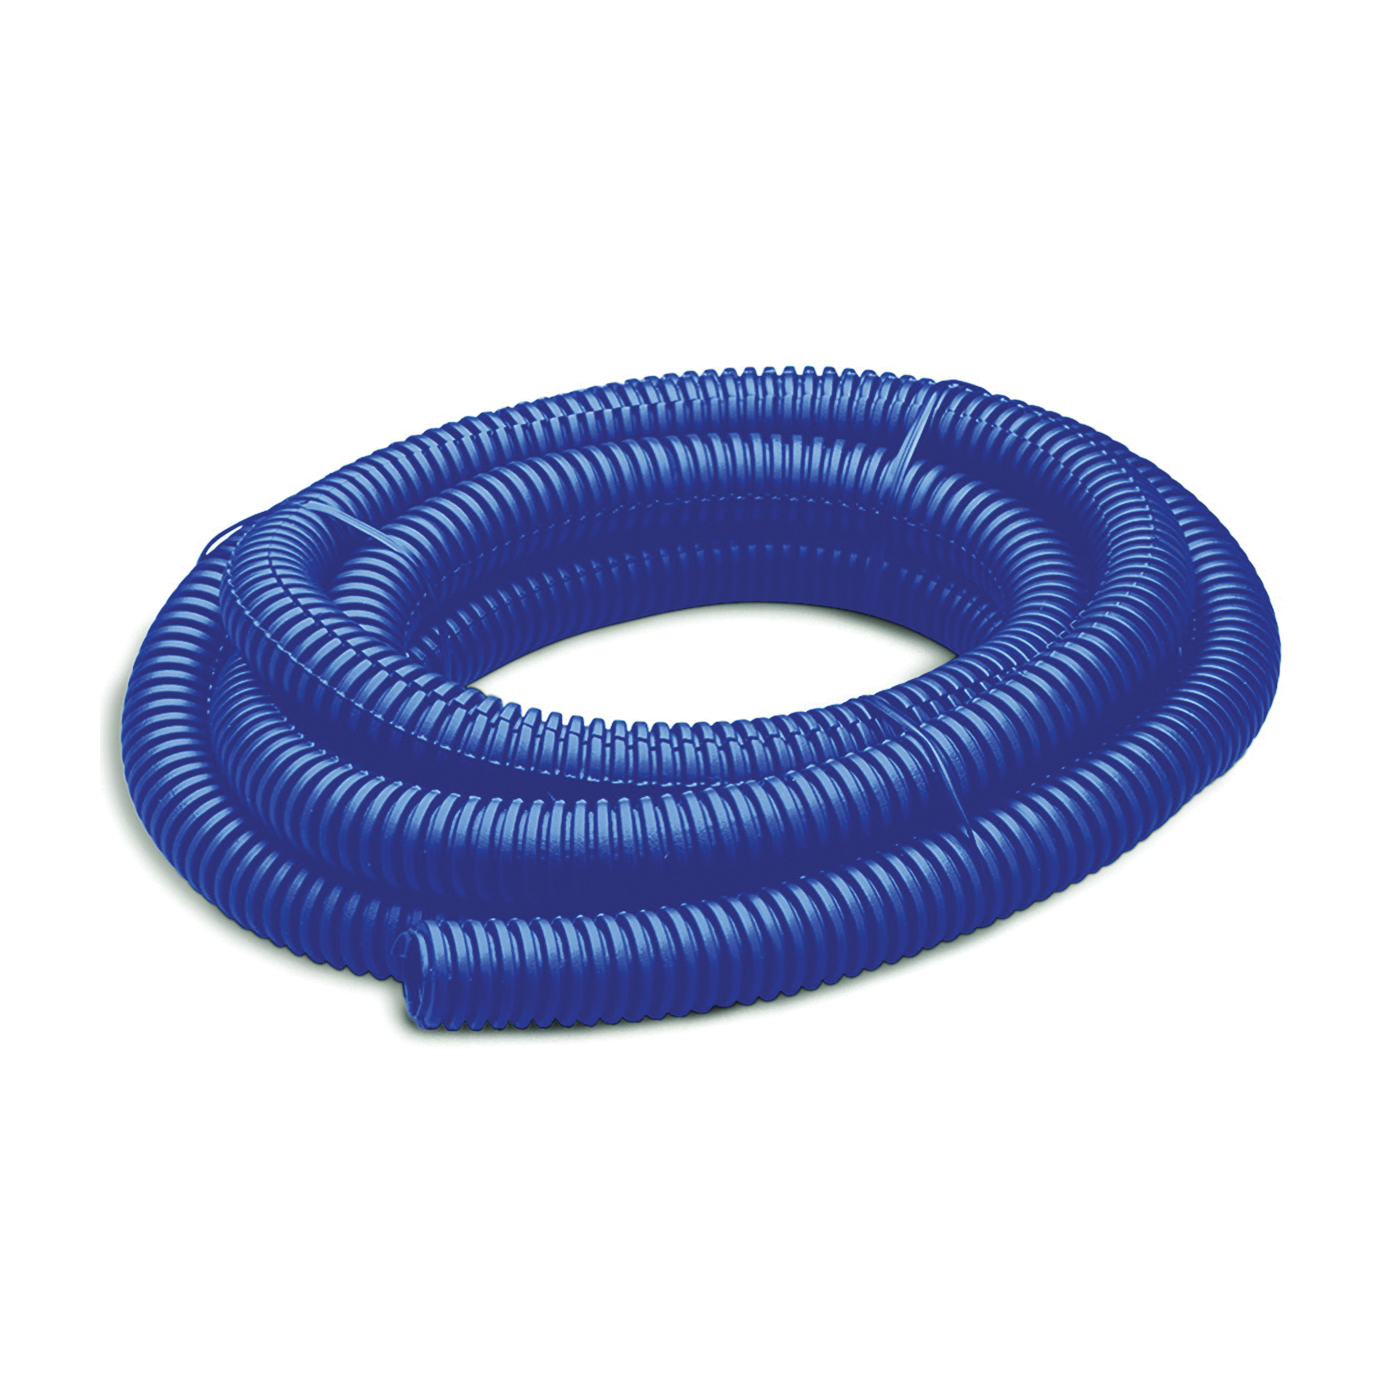 Picture of CALTERM 73461 Tube, 3/8 in Dia, 6 ft L, Blue